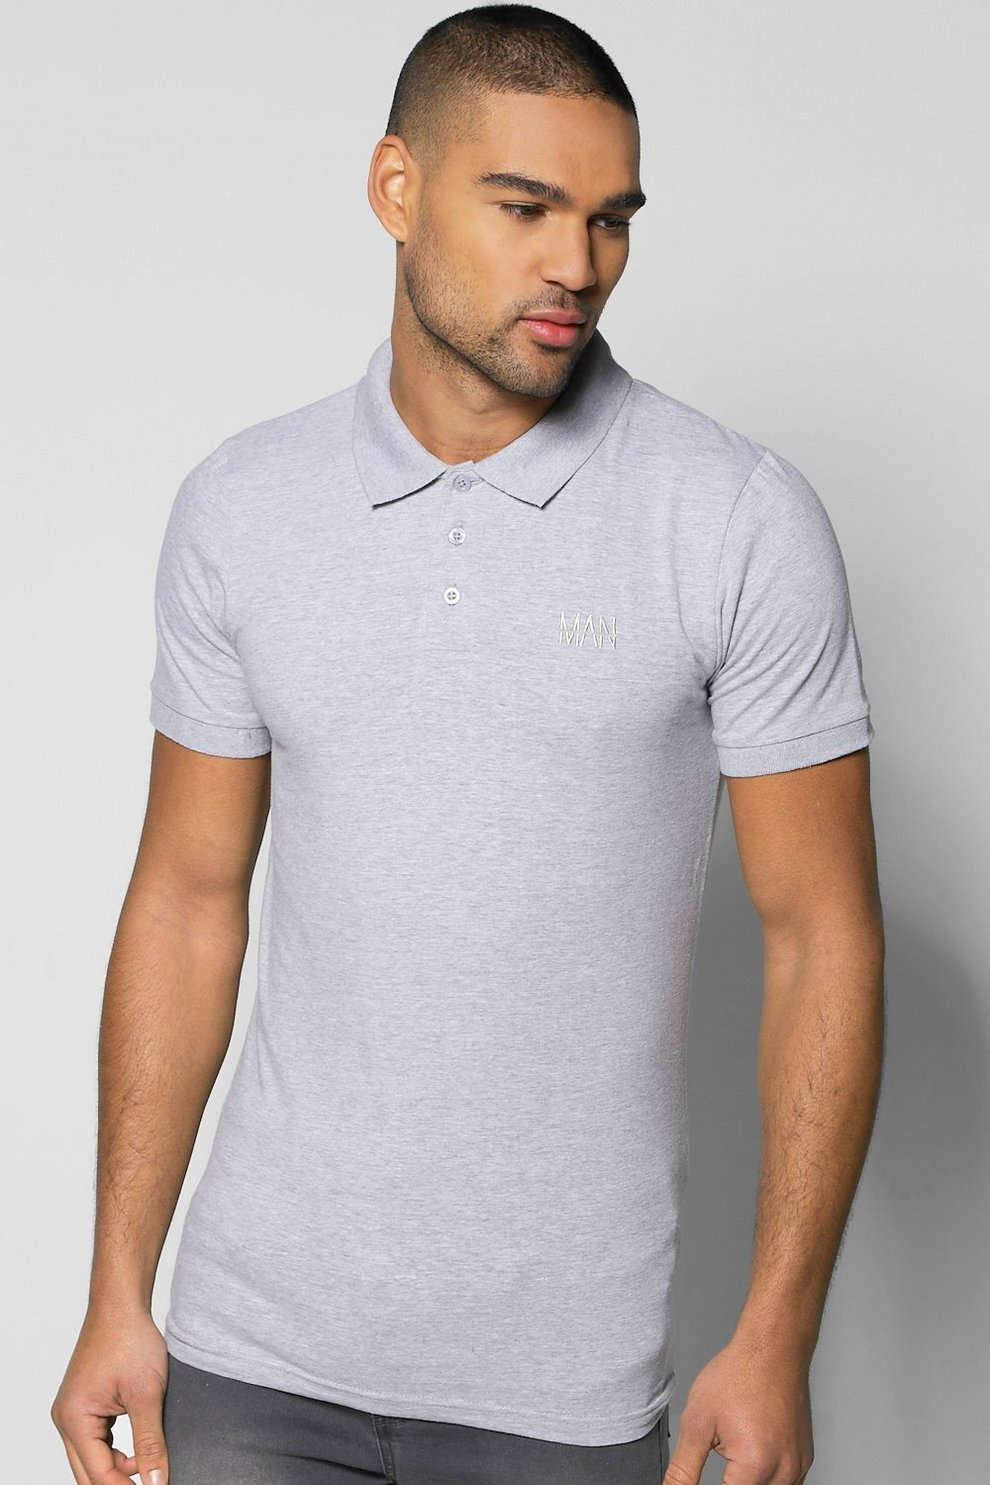 BOOHOOMAN SHORT SLEEVE MUSCLE FIT - Polo - white YbtwrG7P7